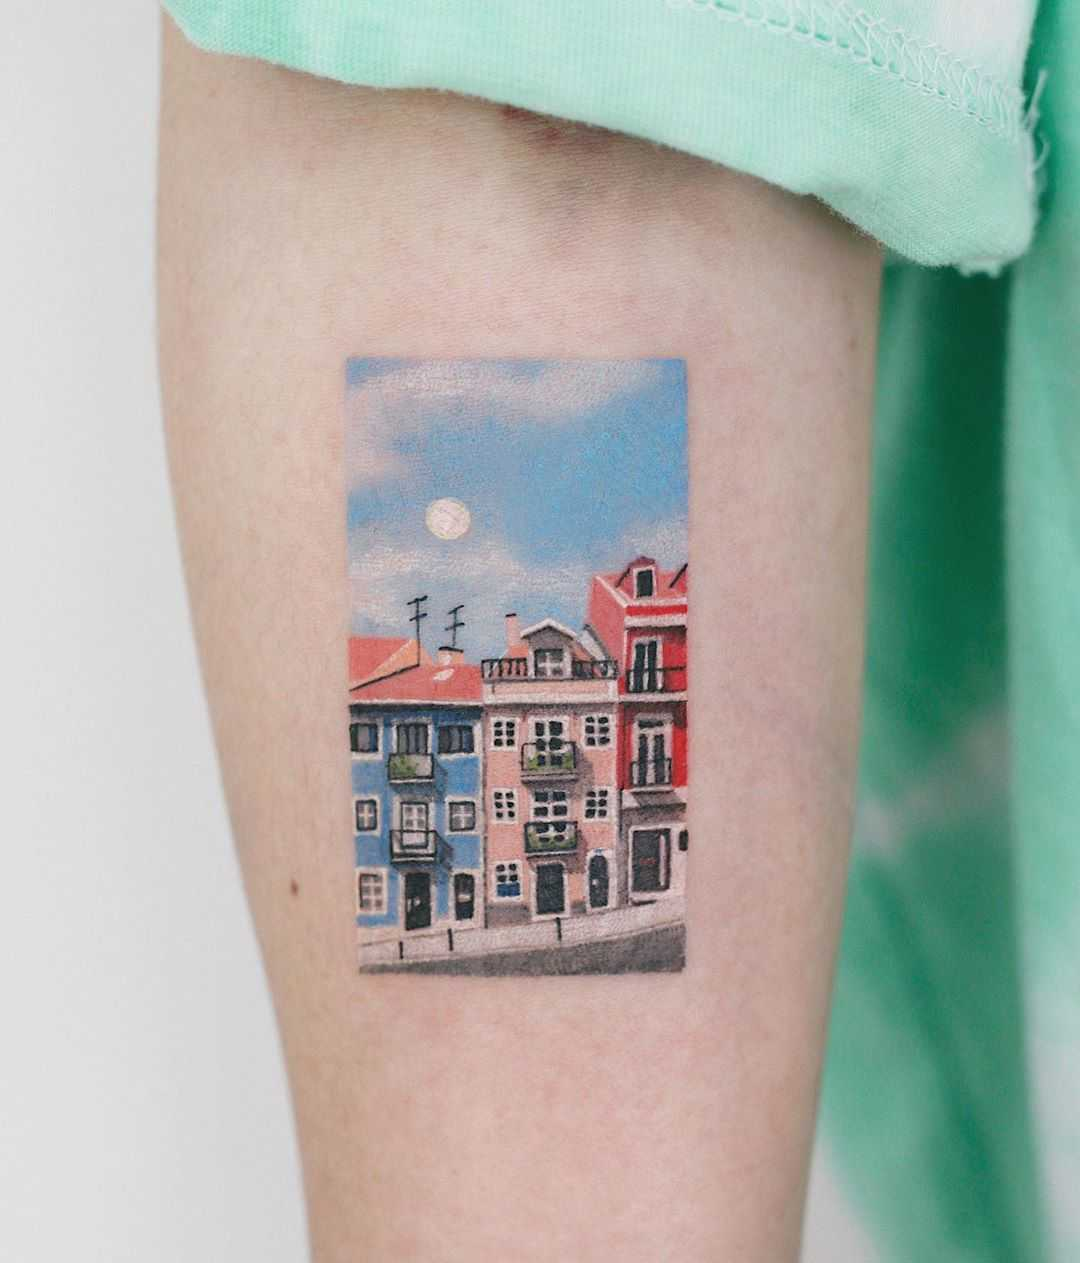 Lovely town tattoo by tattooist Saegeem